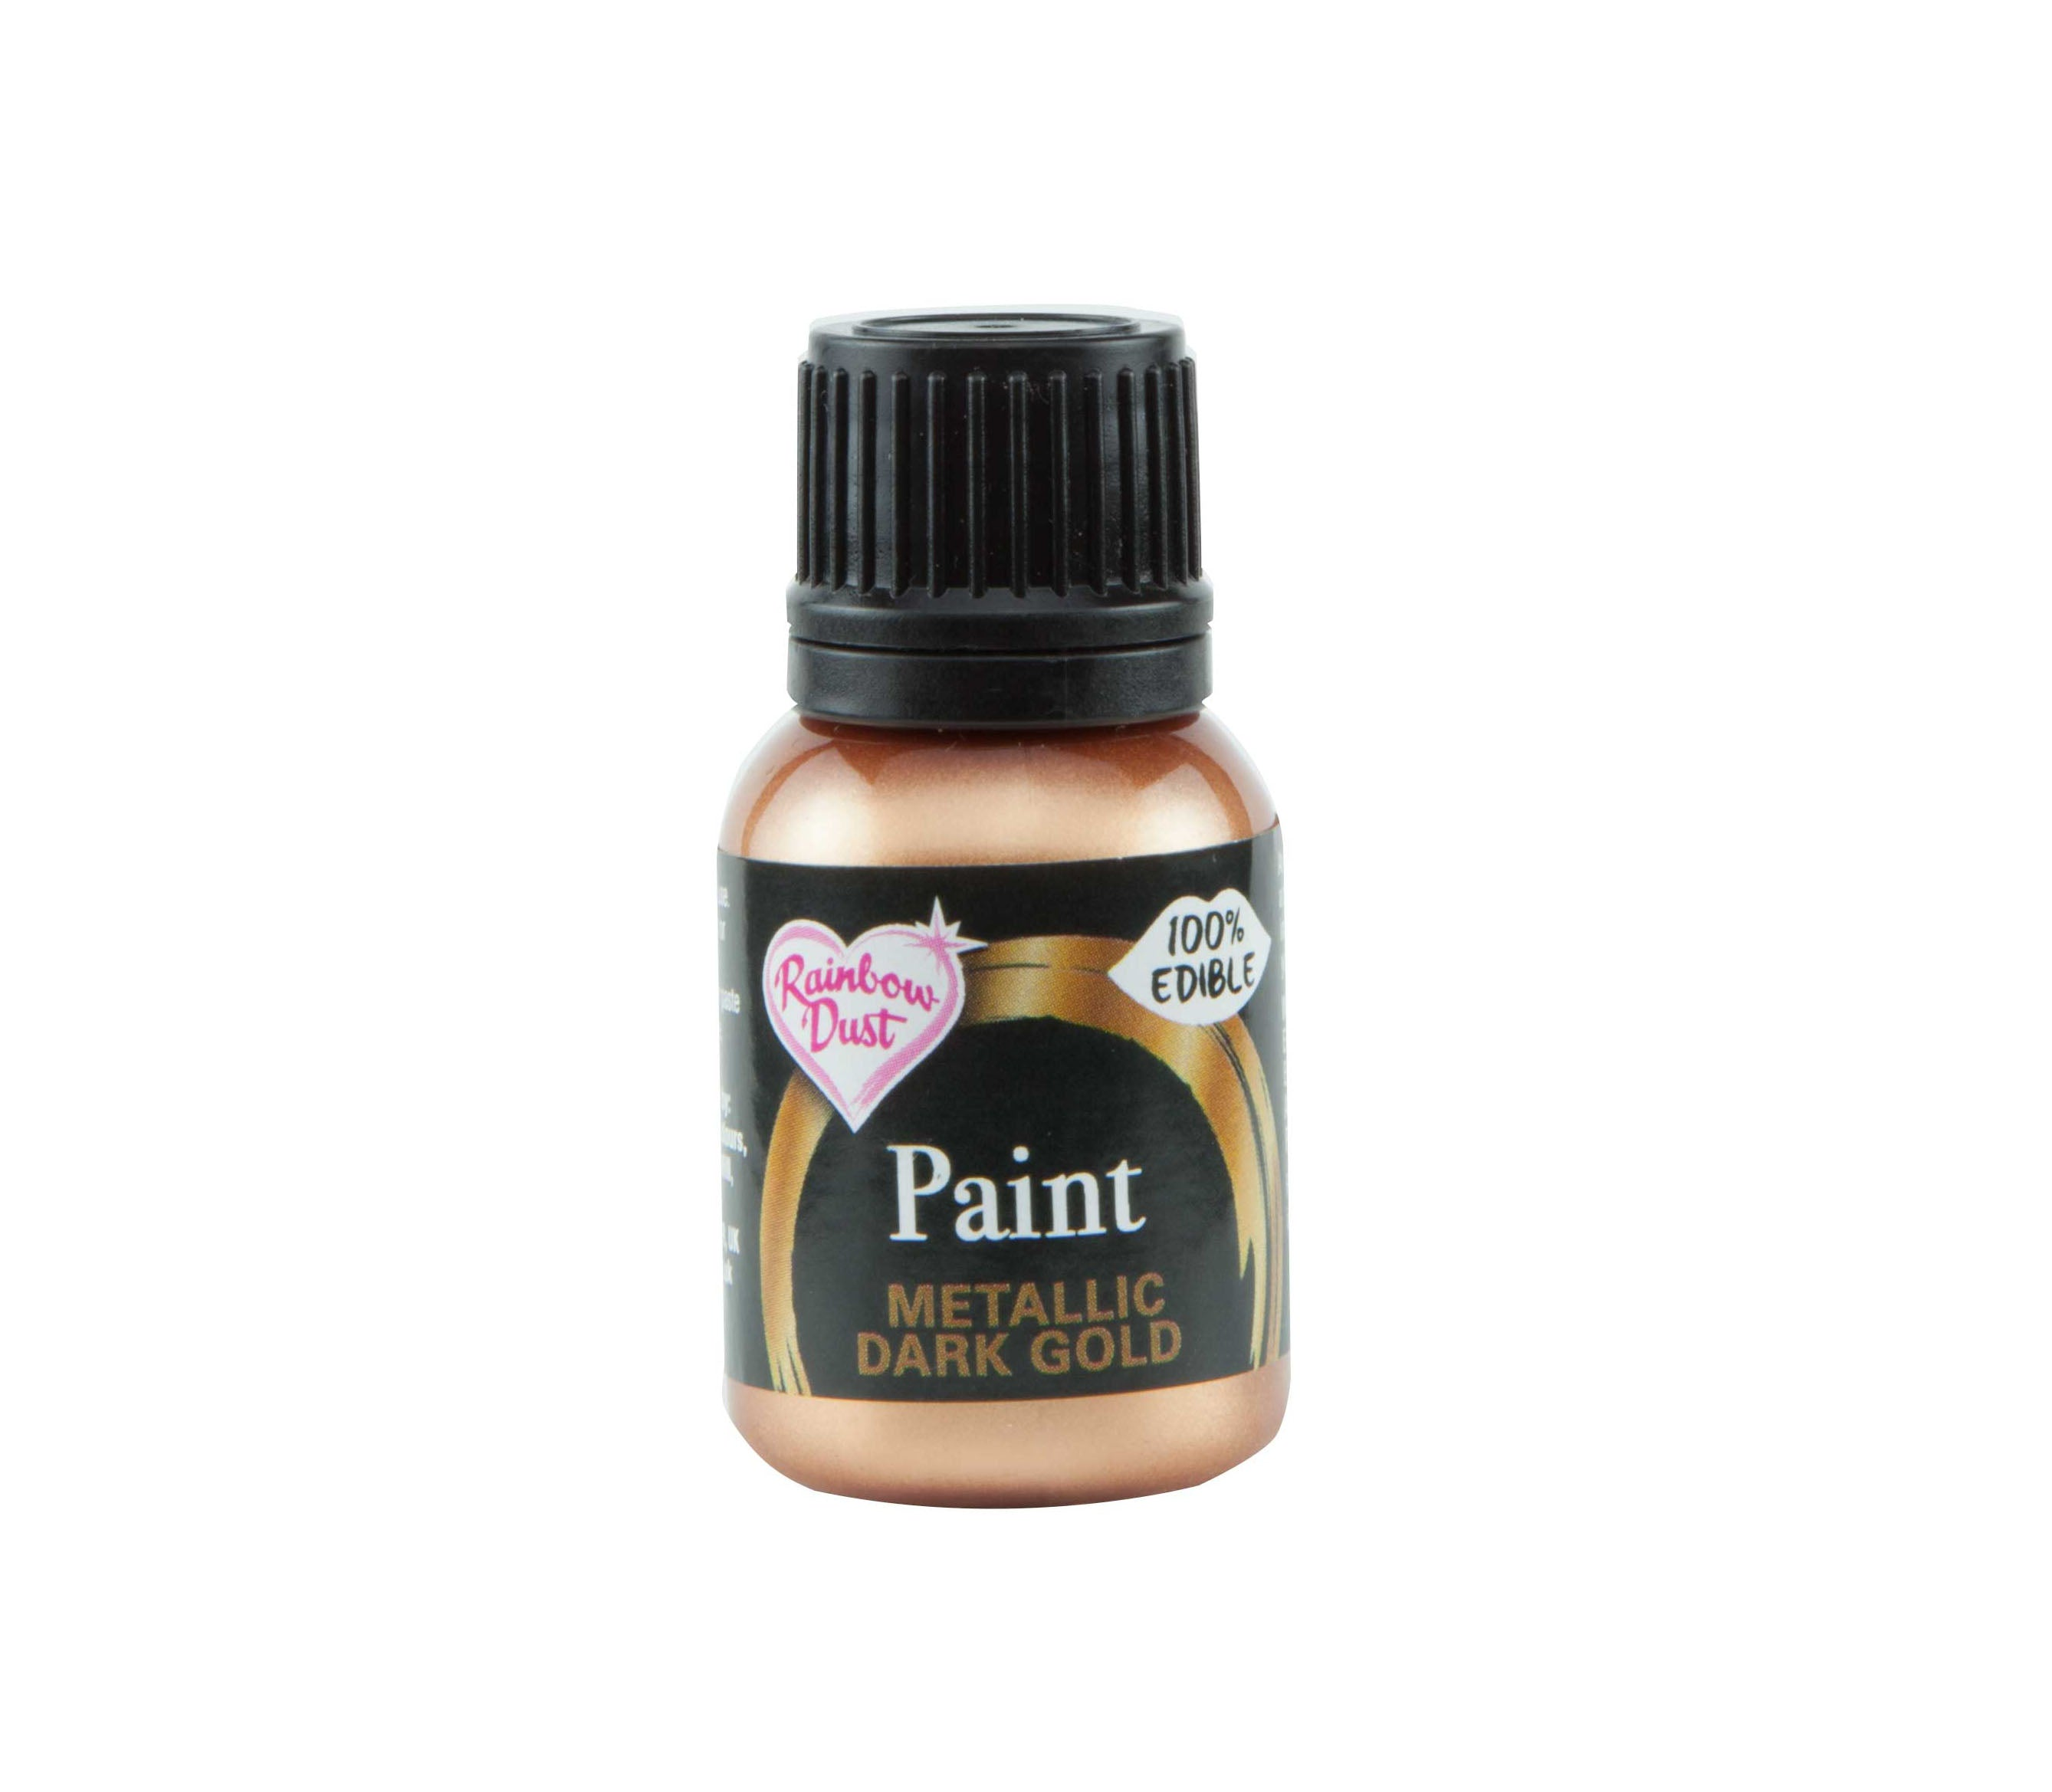 Edible Paints Dark Gold 25g